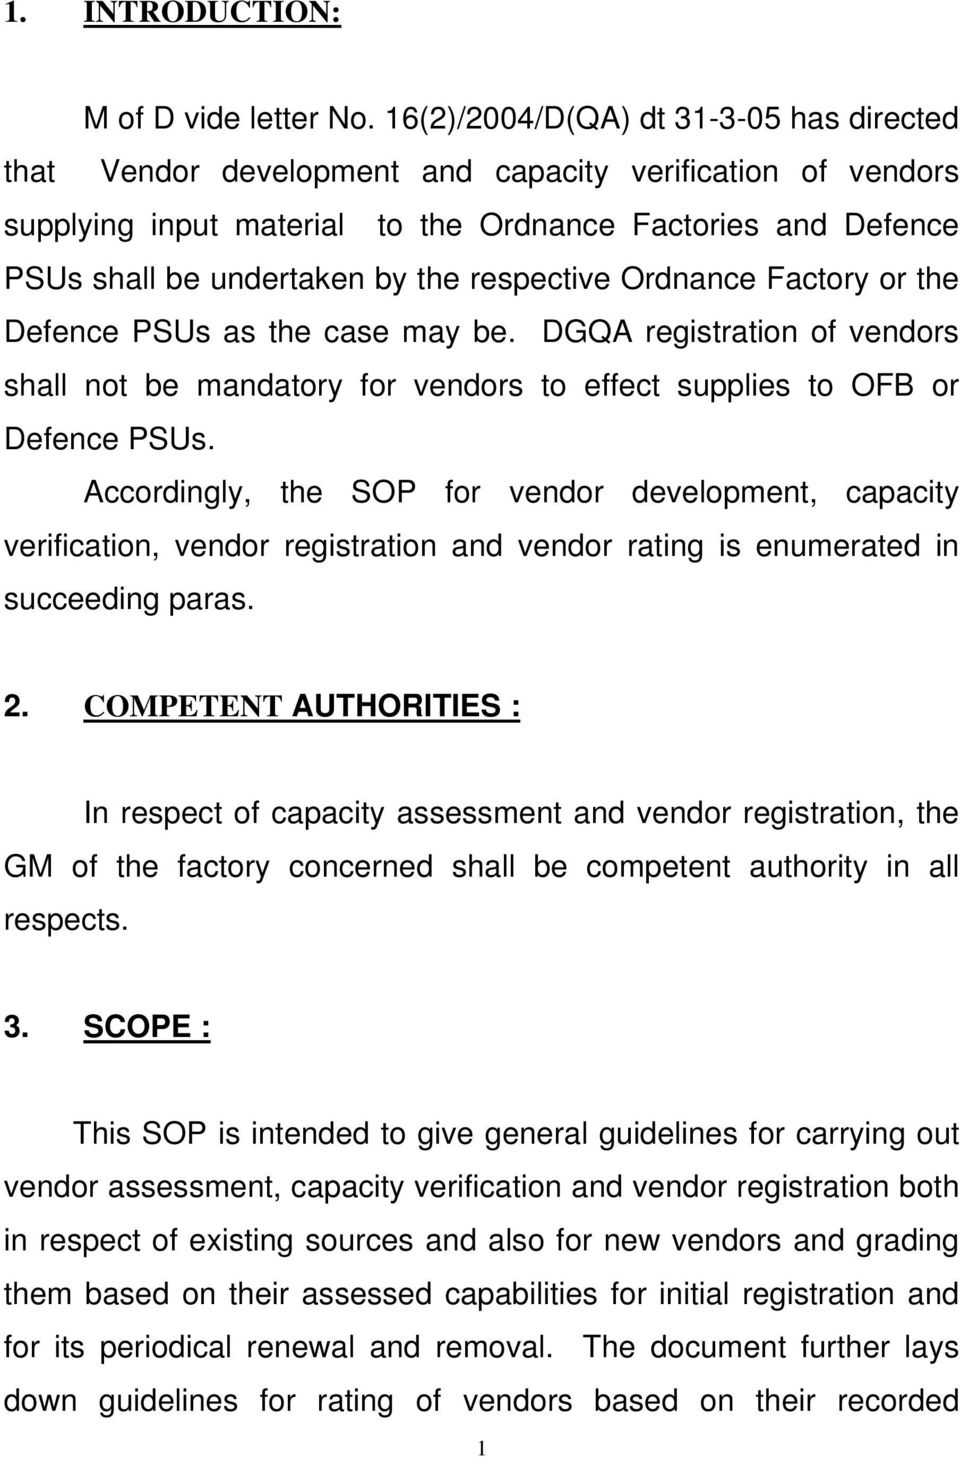 respective Ordnance Factory or the Defence PSUs as the case may be. DGQA registration of vendors shall not be mandatory for vendors to effect supplies to OFB or Defence PSUs.